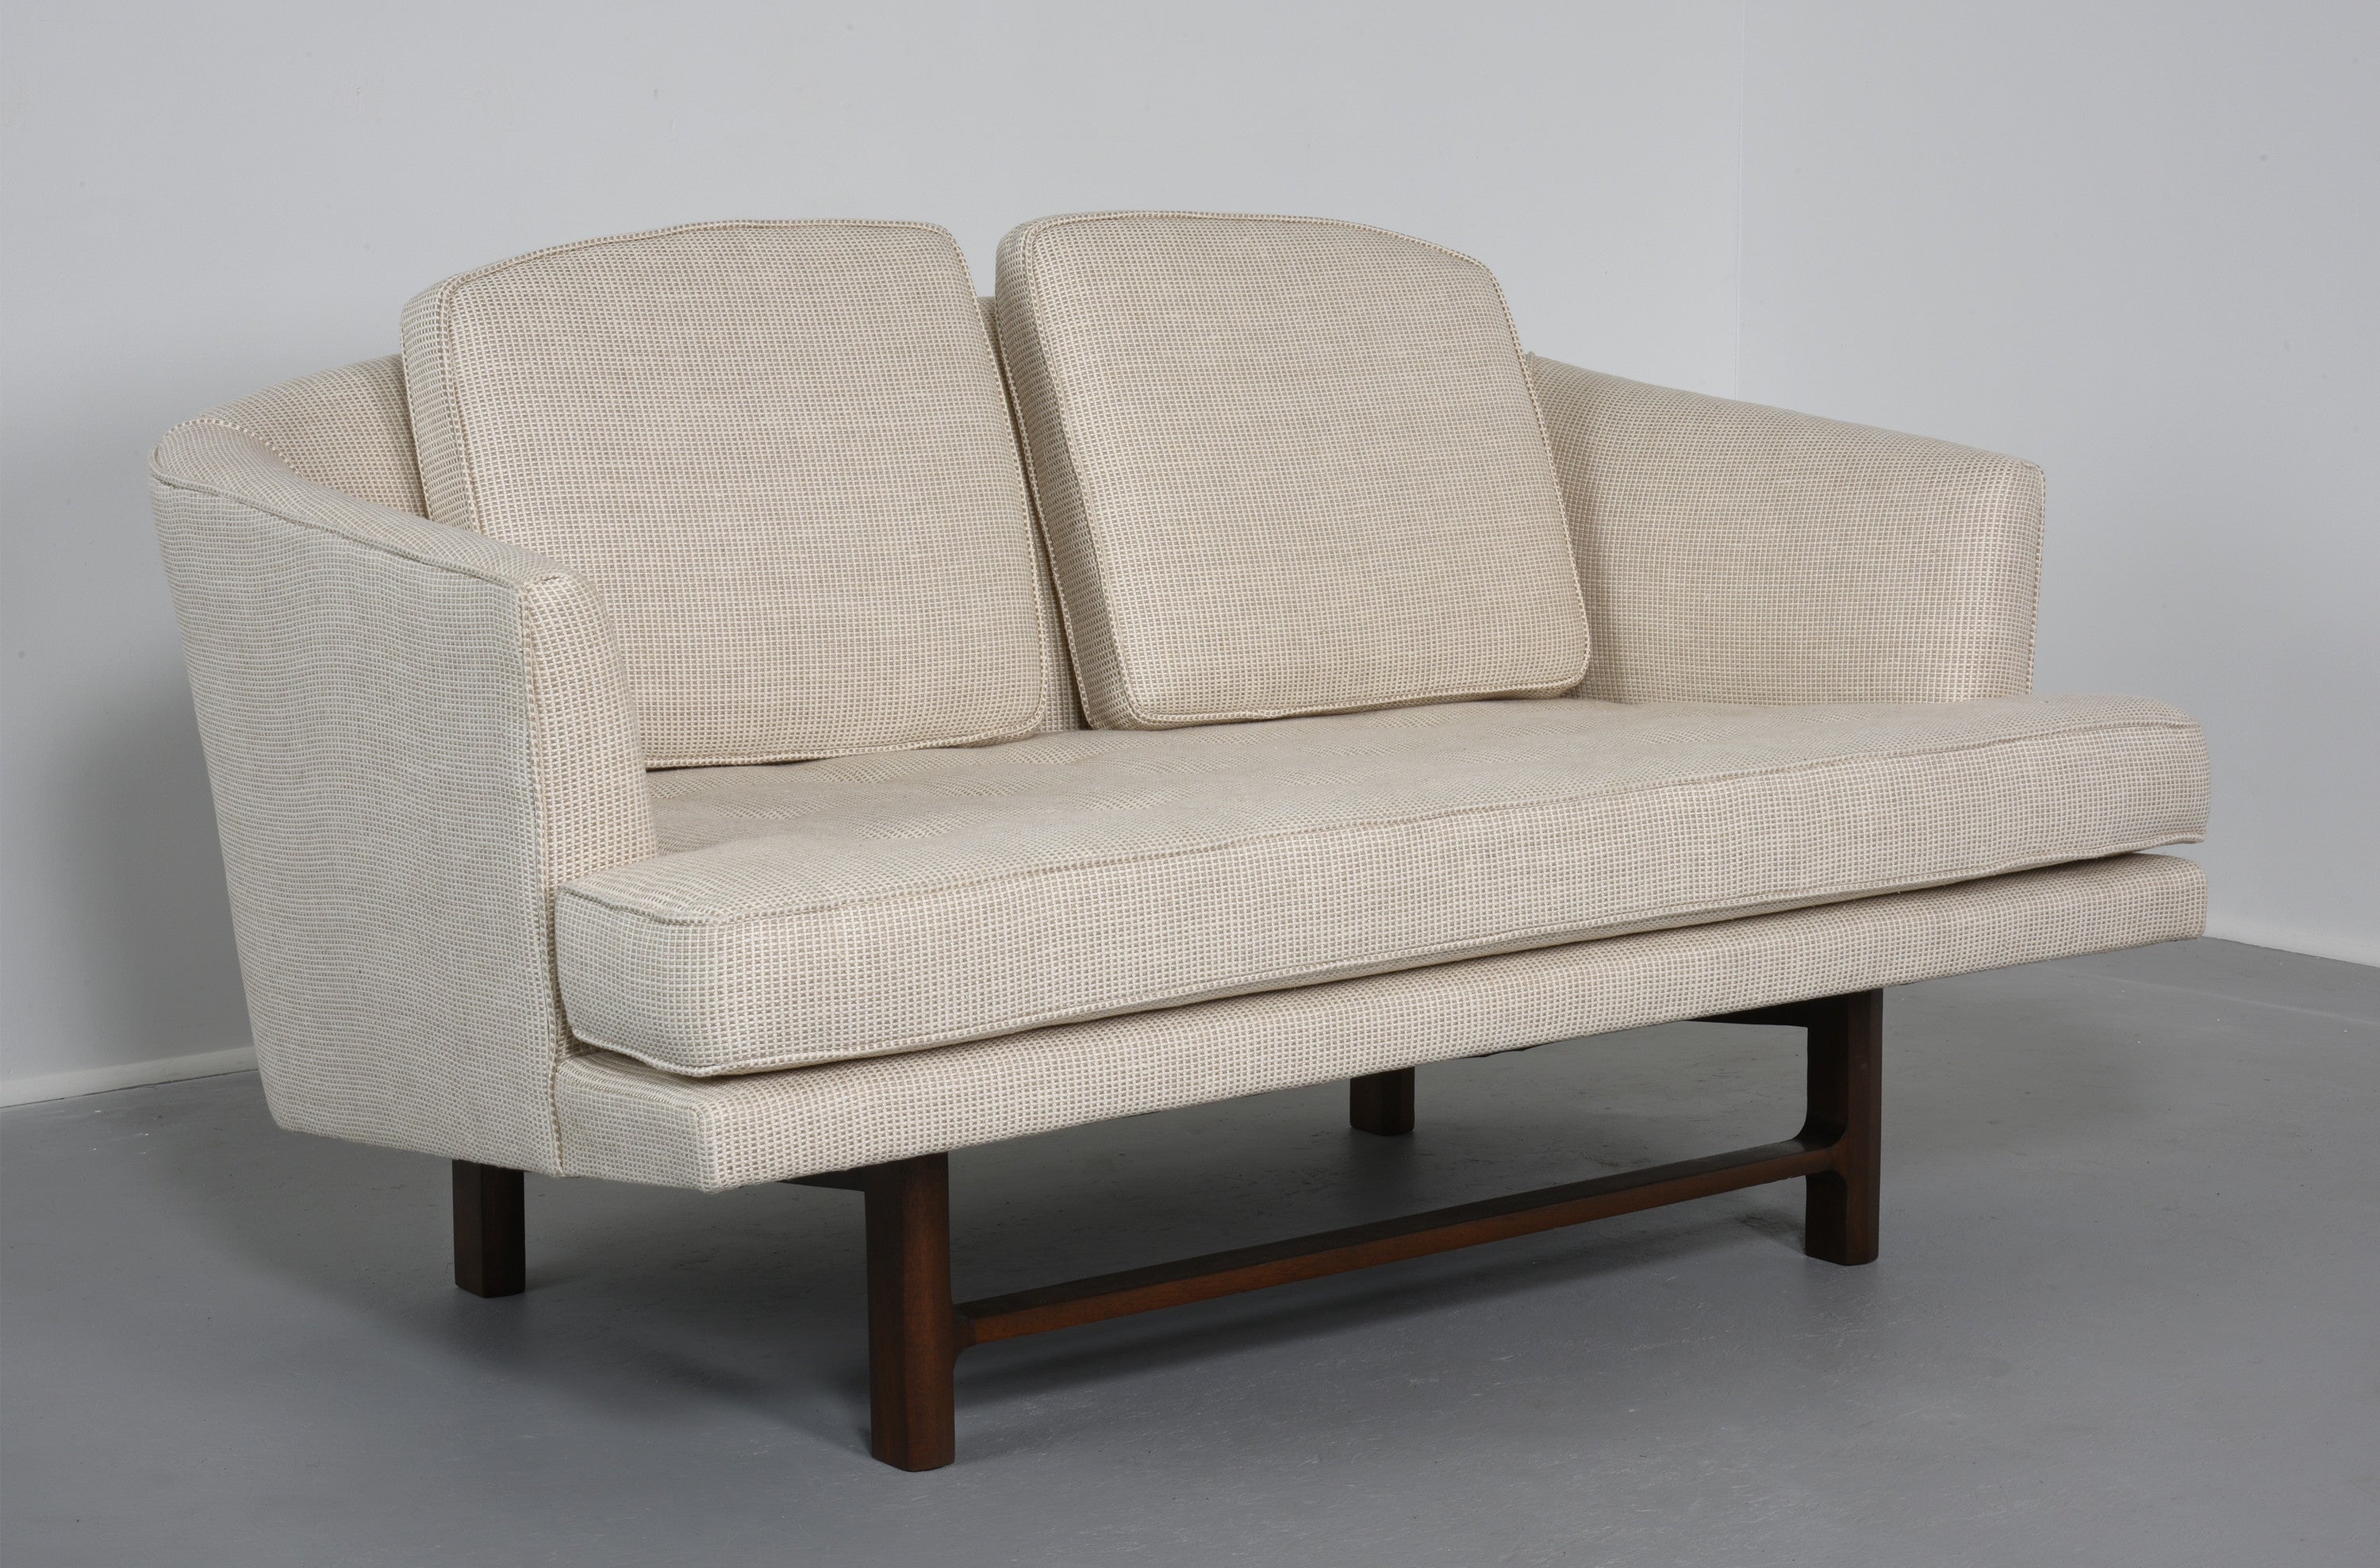 Edward Wormley for Dunbar Settee with Mahogany Base, 1956 - The Exchange Int